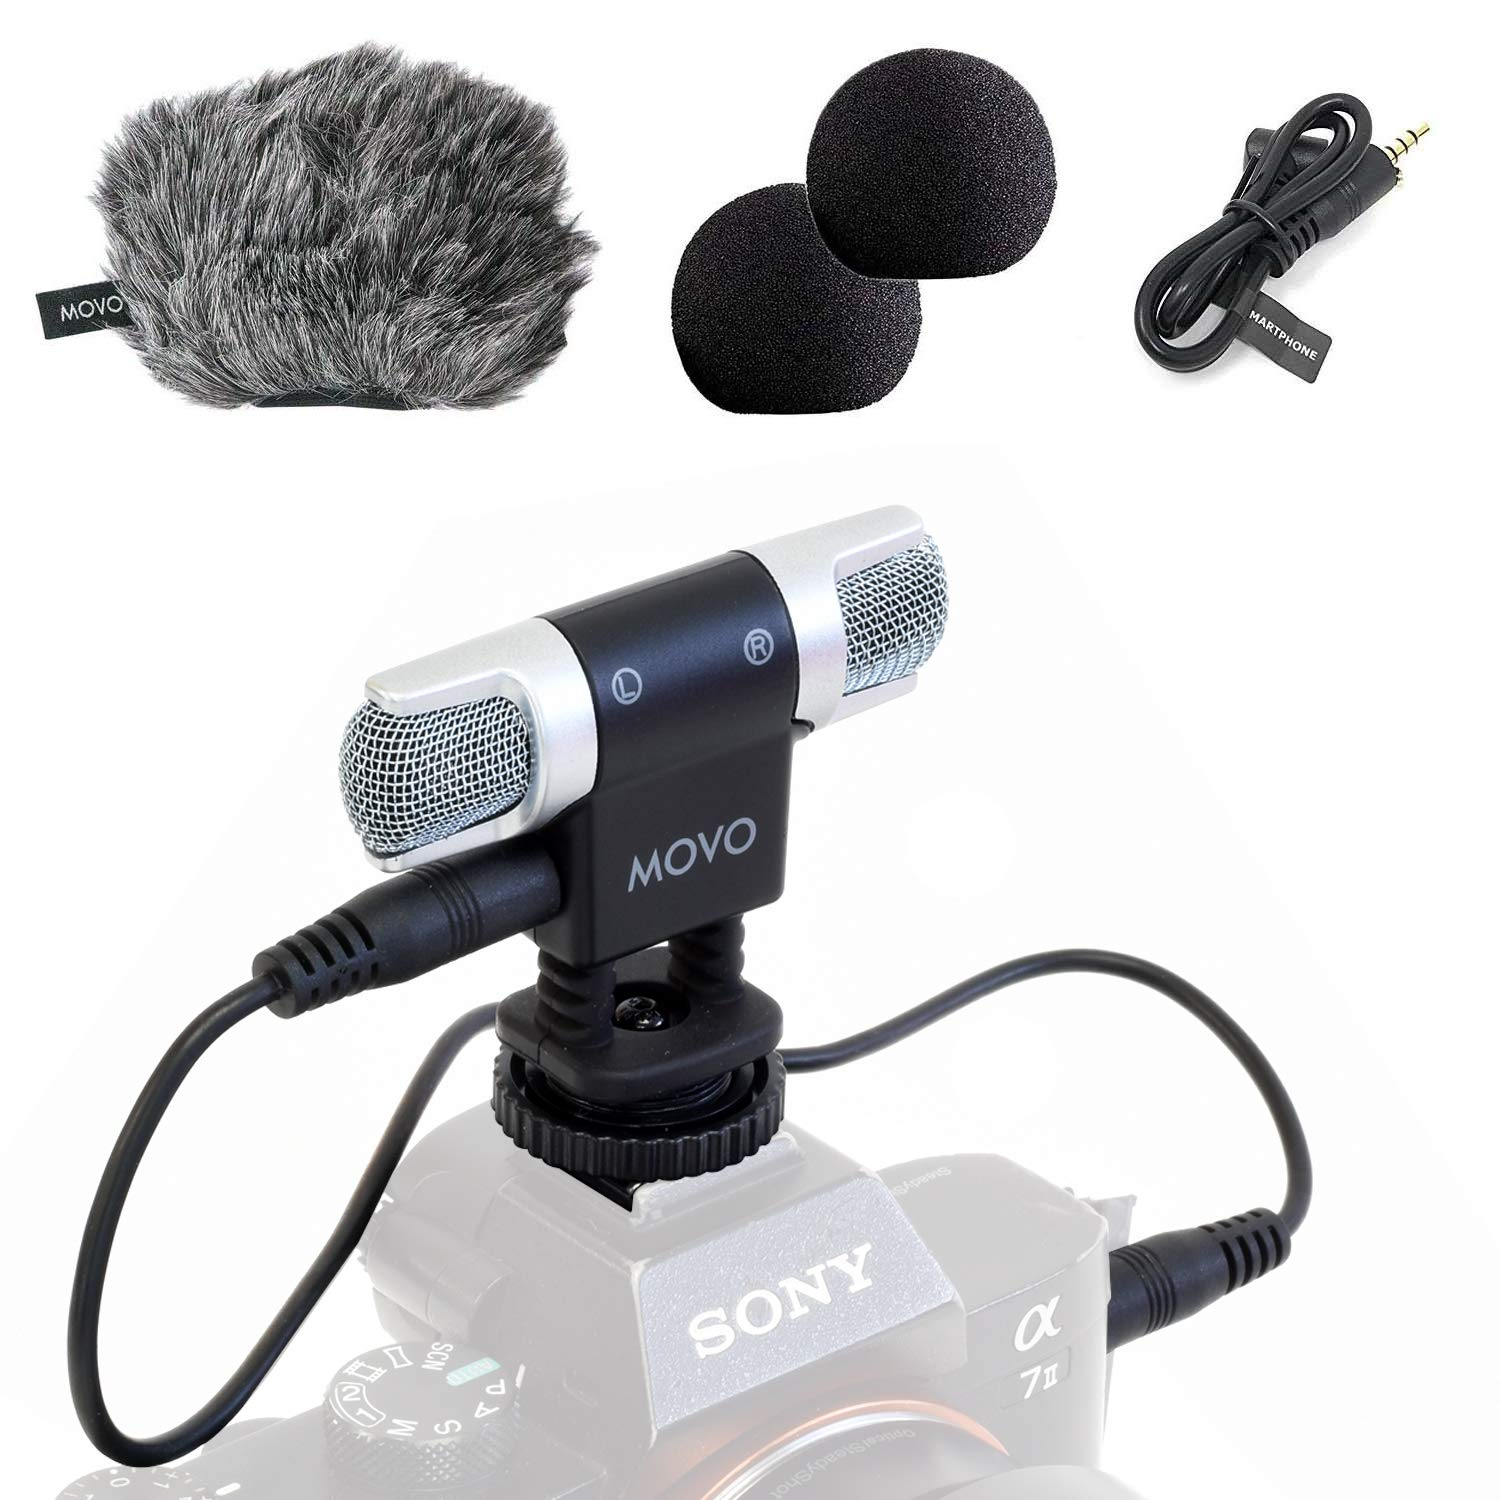 Movo VXR3000 Universal Stereo Microphone with Foam and Furry Windscreens and Travel Case - for iPhone and Android Smartphones, Canon EOS Nikon DSLR, and Action Cameras by Movo